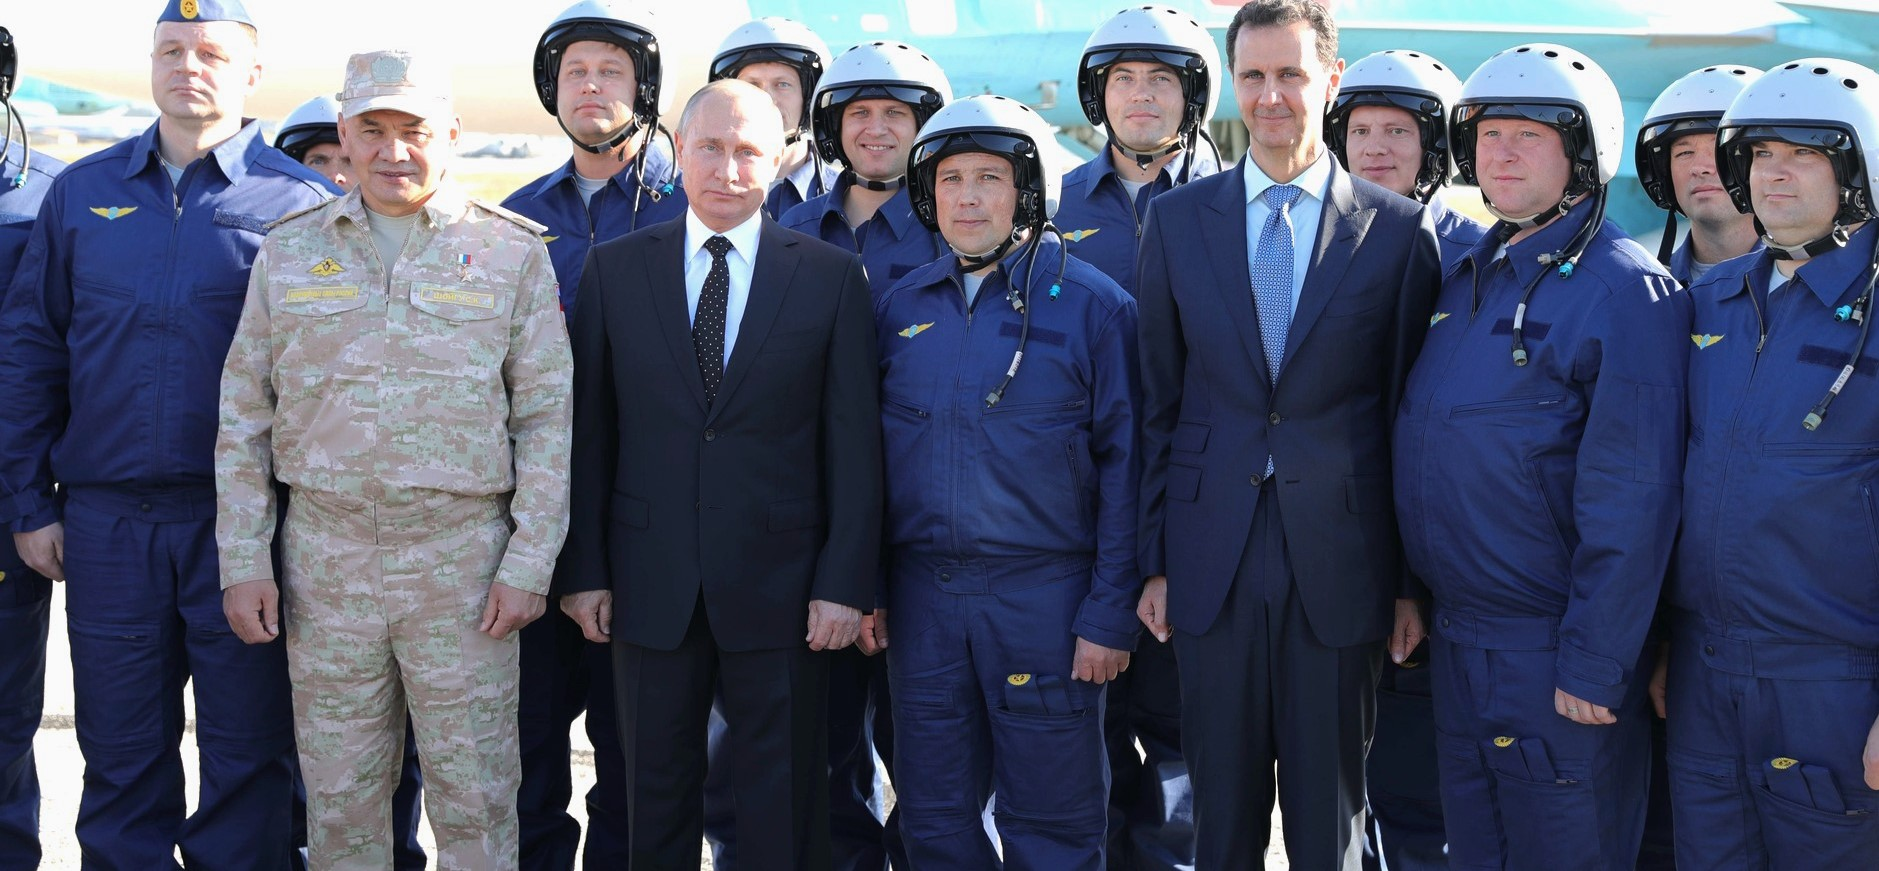 Russia's Vladimir Putin and Syria's Bashar al-Assad with Russian pilots at Khmeimim Air Base in Syria, December 2017 (Photo: kremlin.ru)